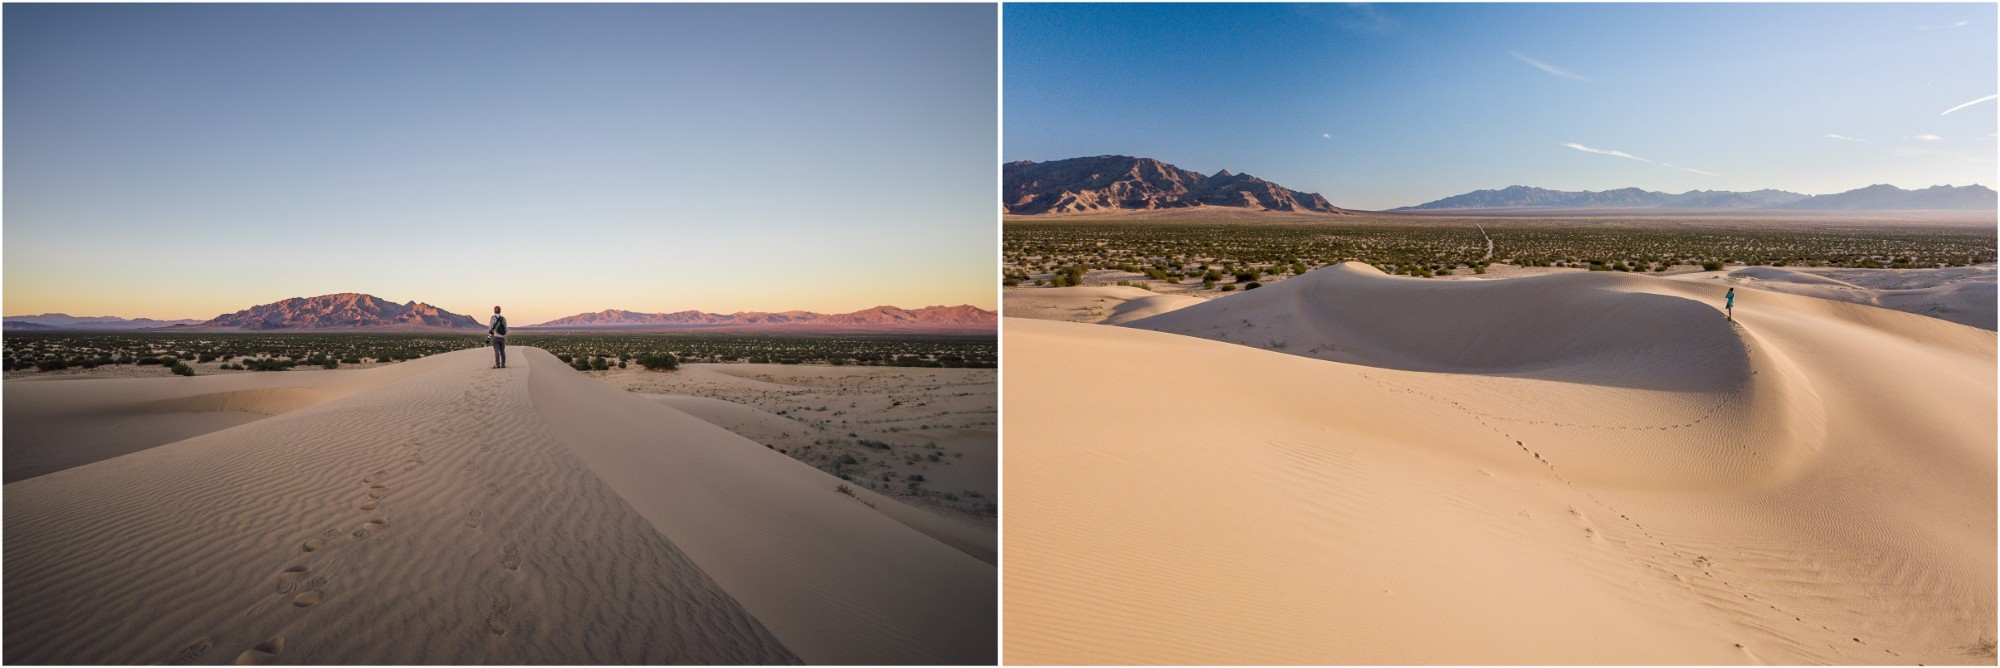 - Cadiz Dunes Wilderness in Mojave Trails National Monument. Whether you visit at sunset or at sunrise, the light on the dunes will make for an incredible landscape.